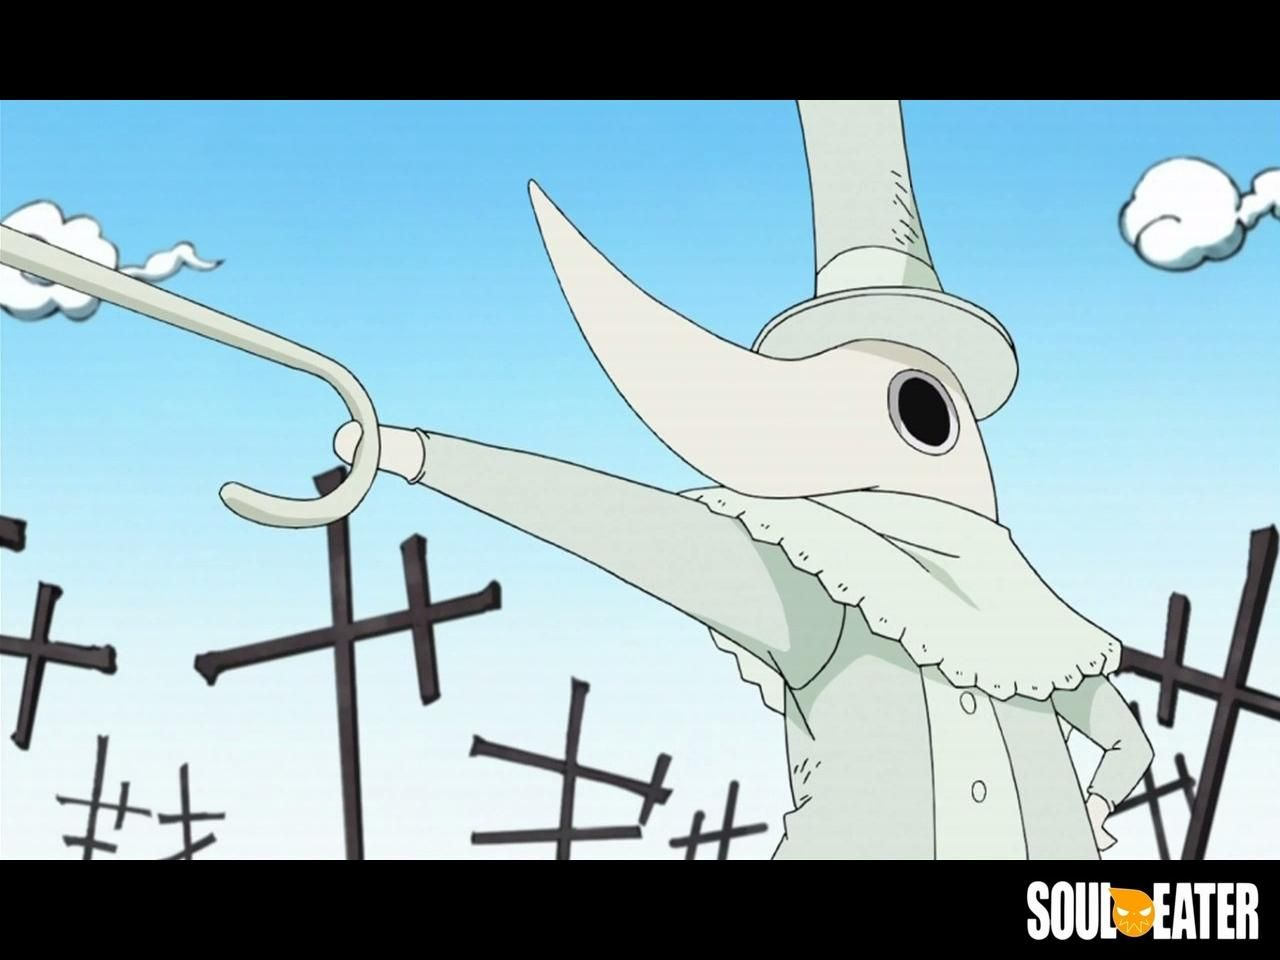 how to make a soul eater character